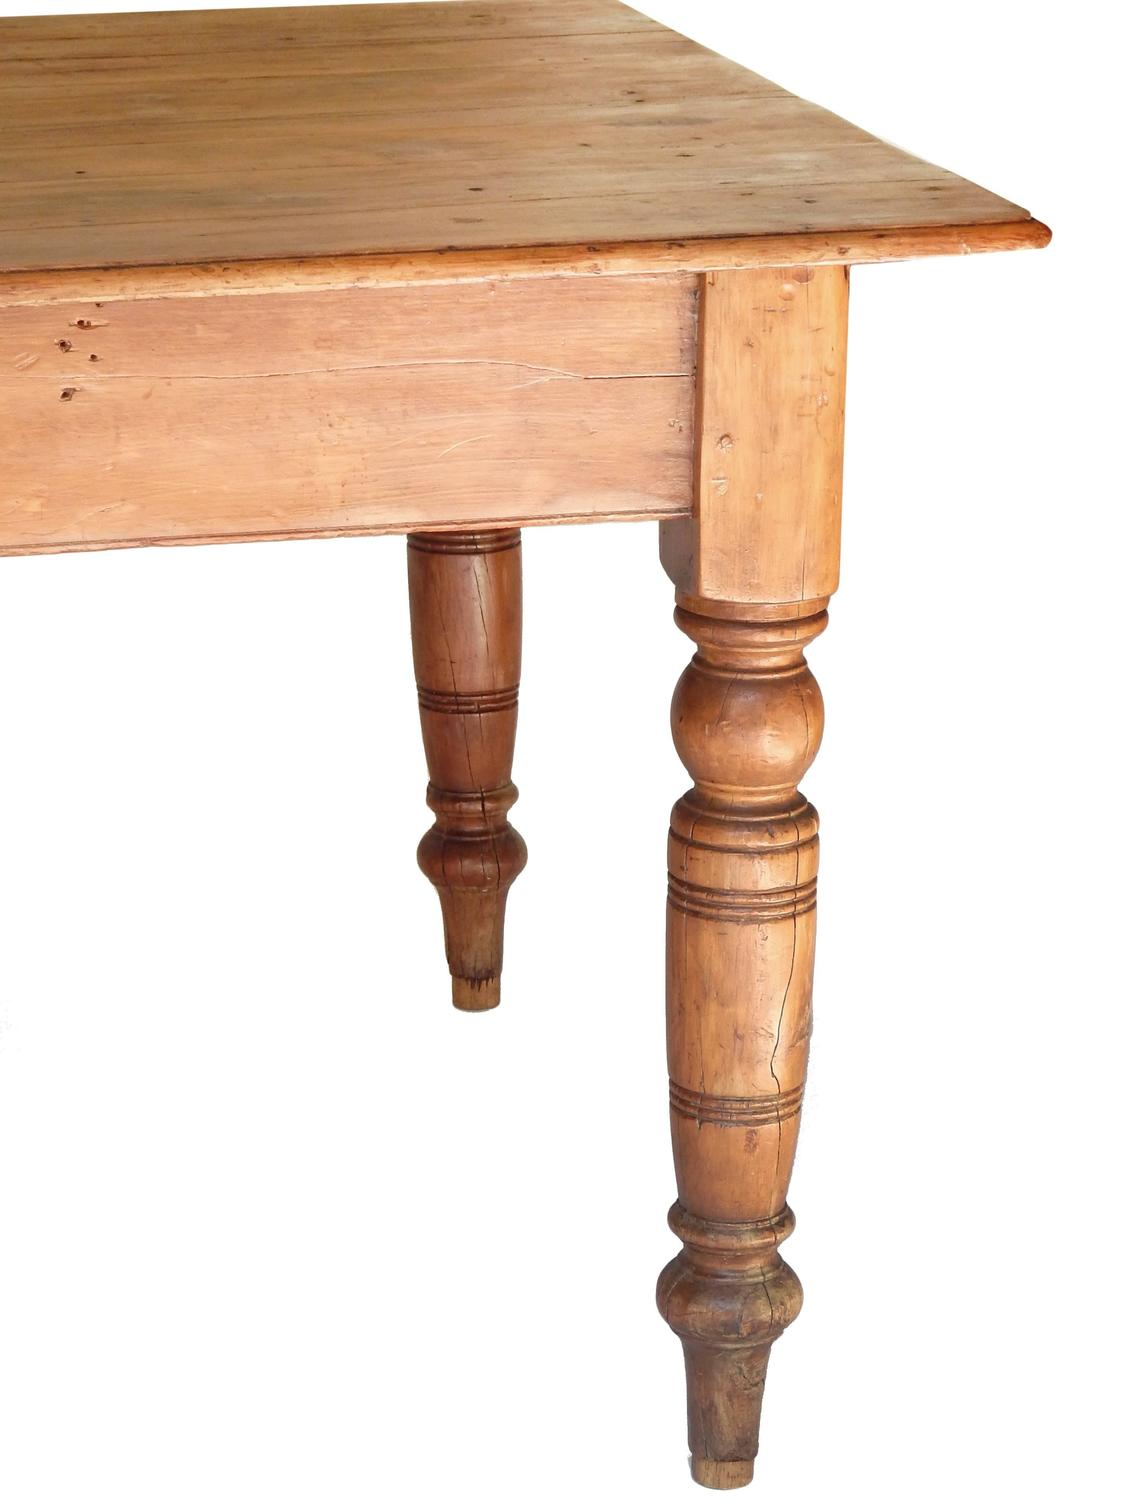 19th Century American Farm Table For Sale at 1stdibs